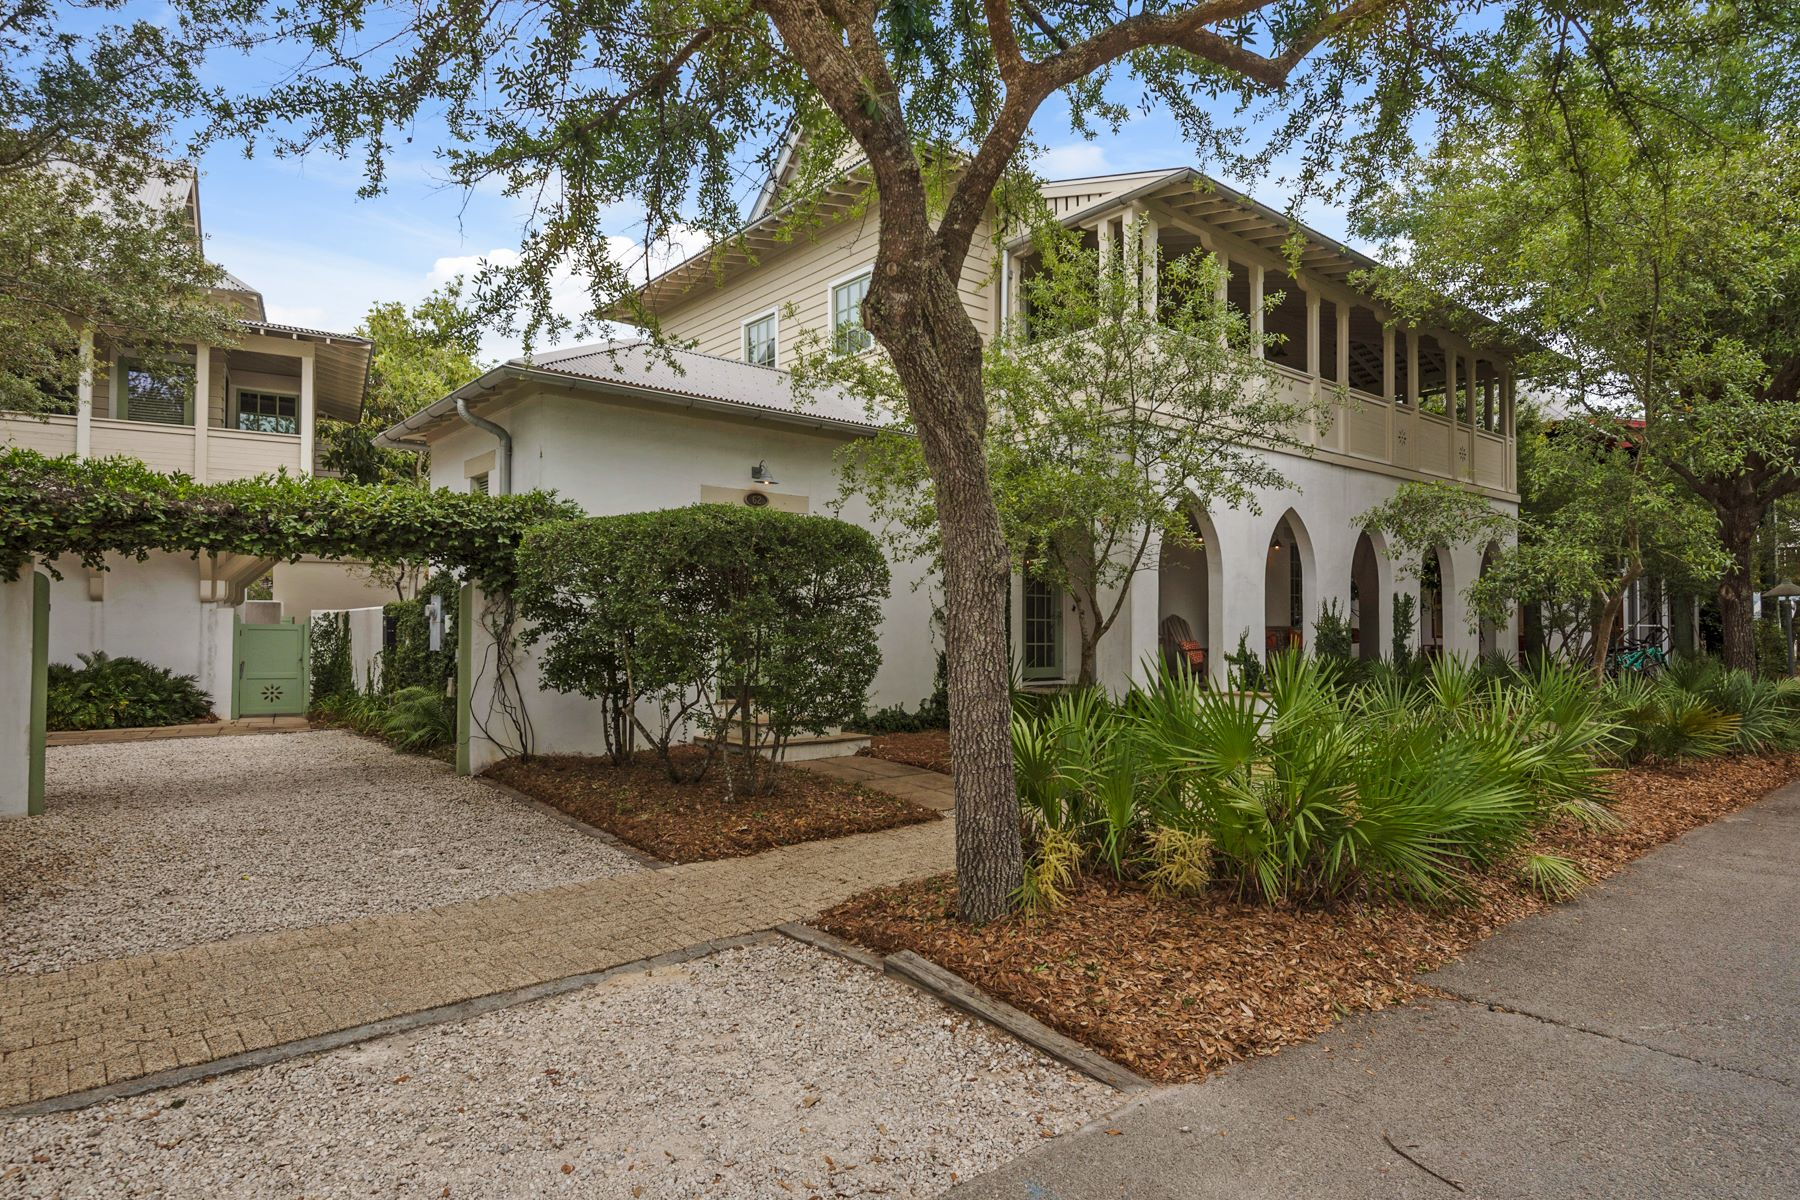 Single Family Home for Sale at CHARMING HOME WITH SPACIOUS BALCONIES AND COURTYARD 62 Georgetown Avenue Rosemary Beach, Florida, 32461 United States